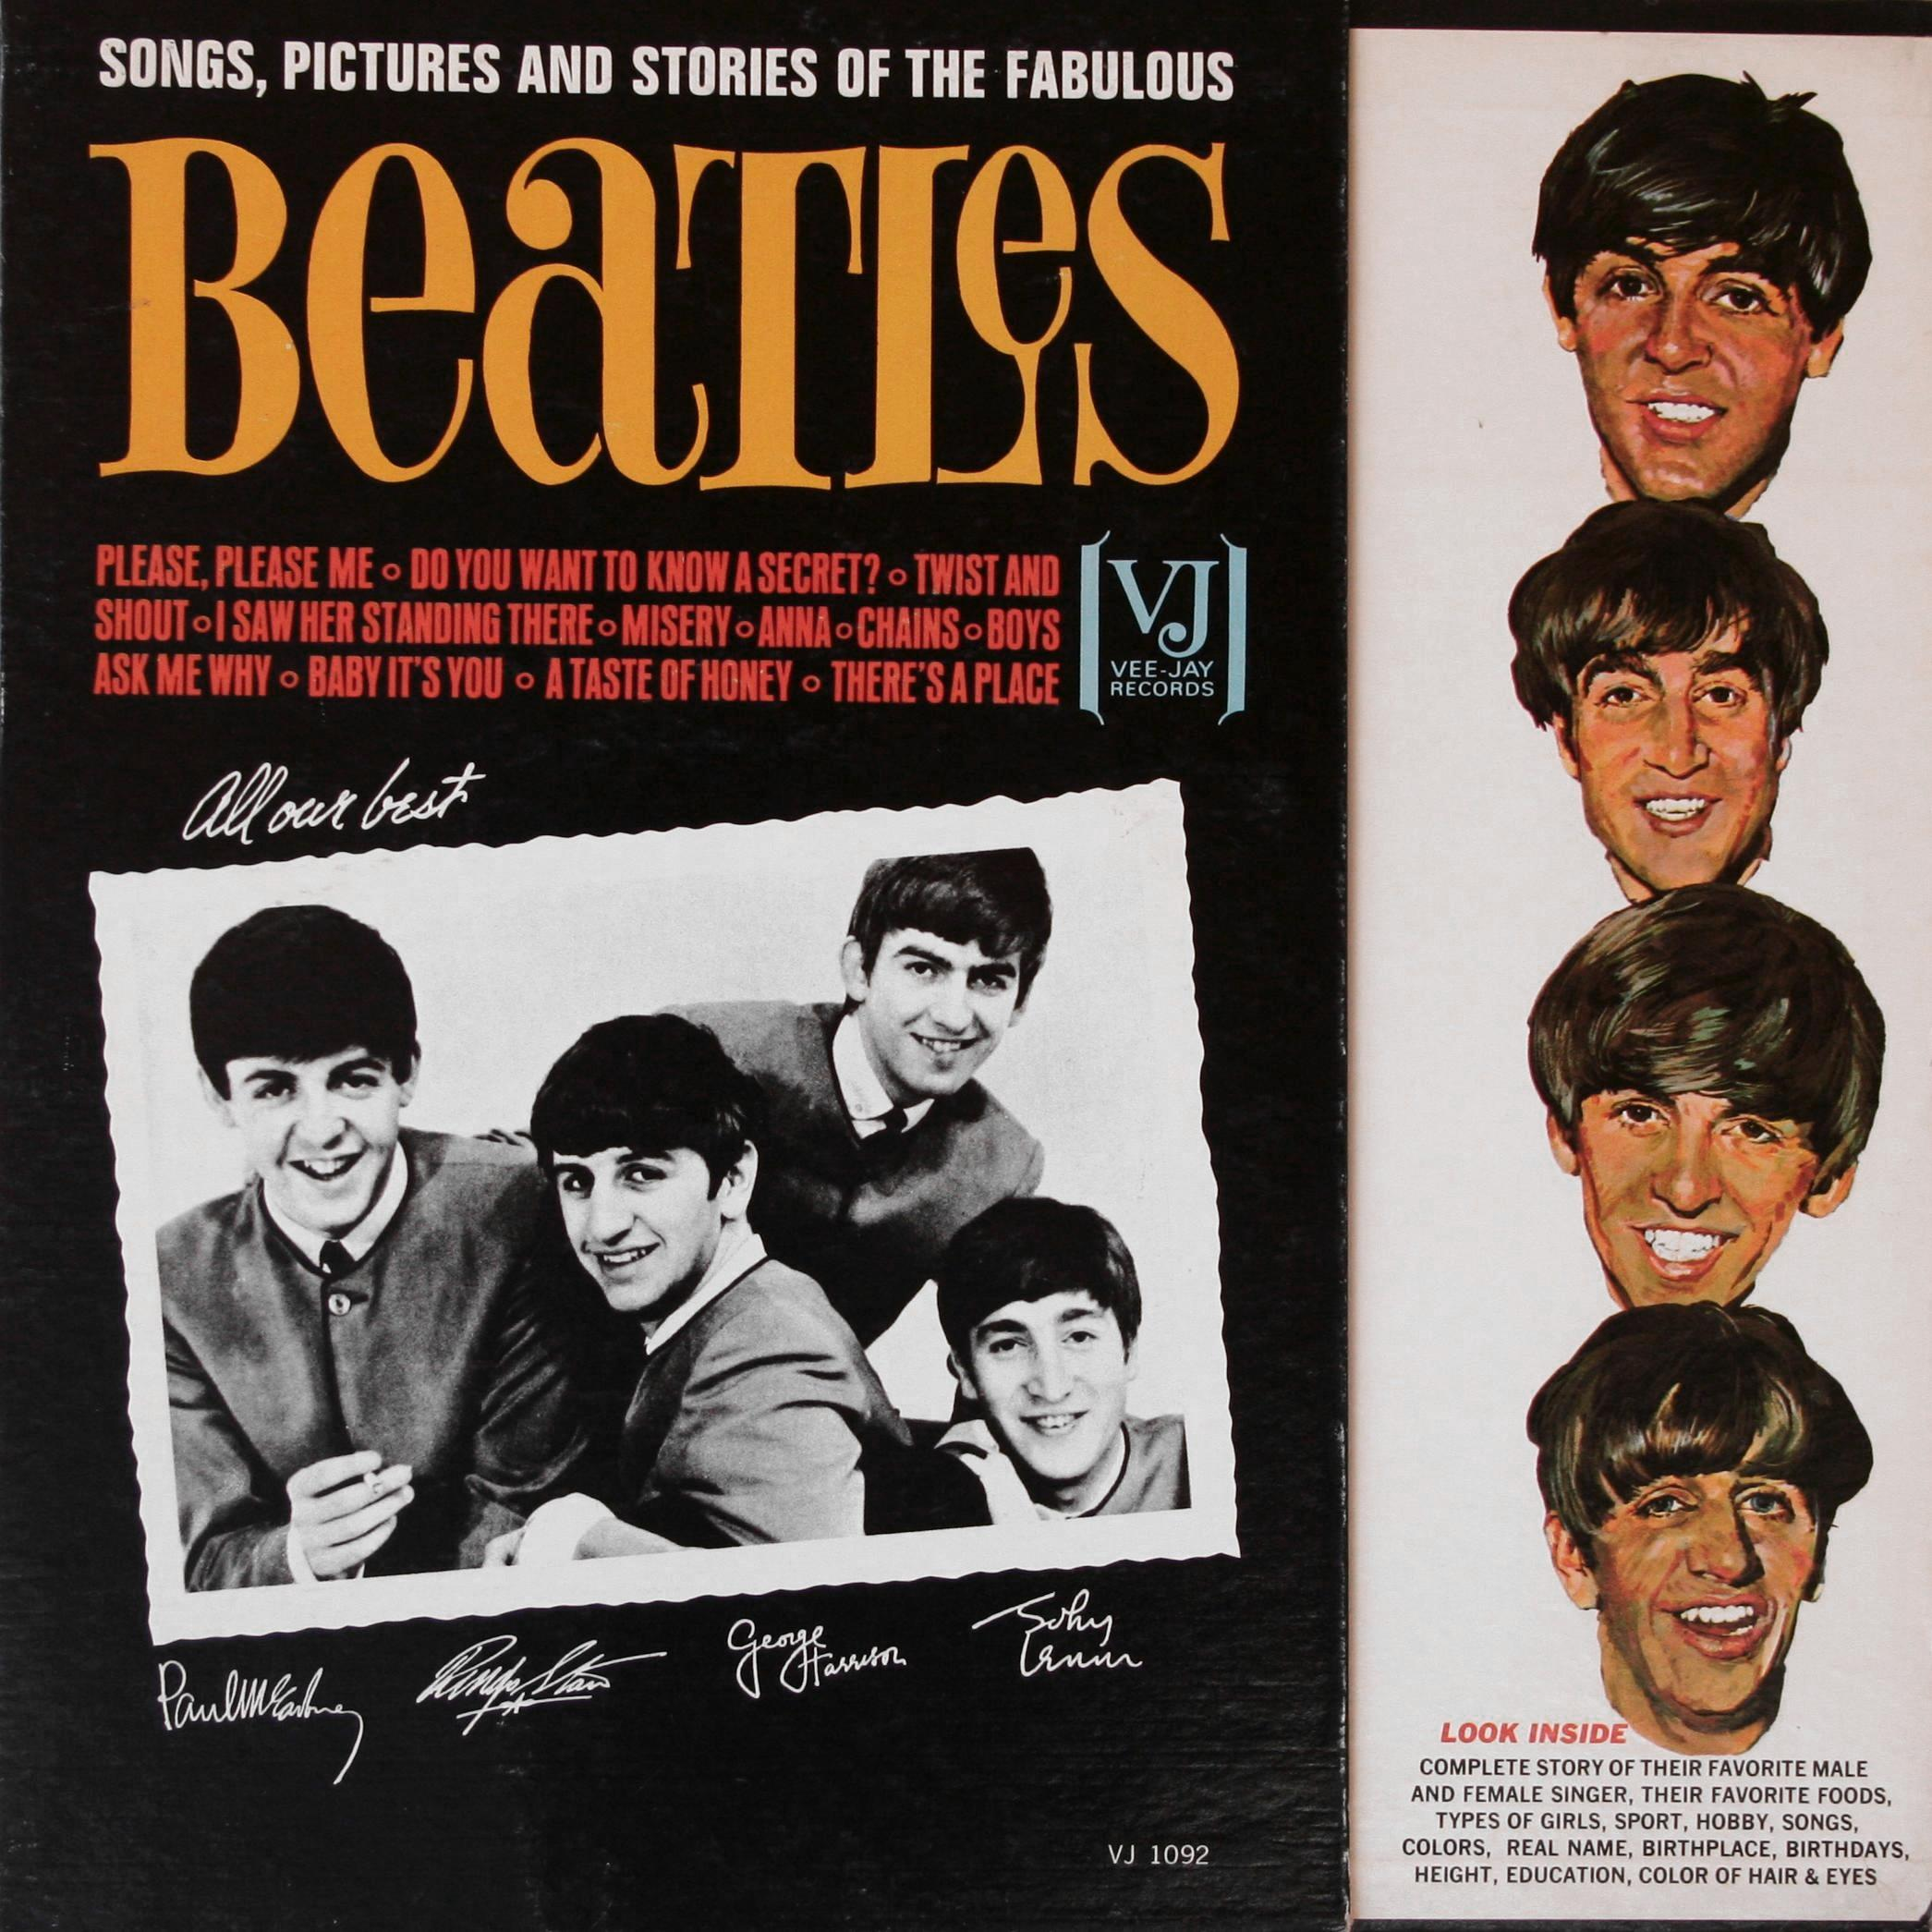 The Beatles Collection » Song, Pictures And Stories Of The ...